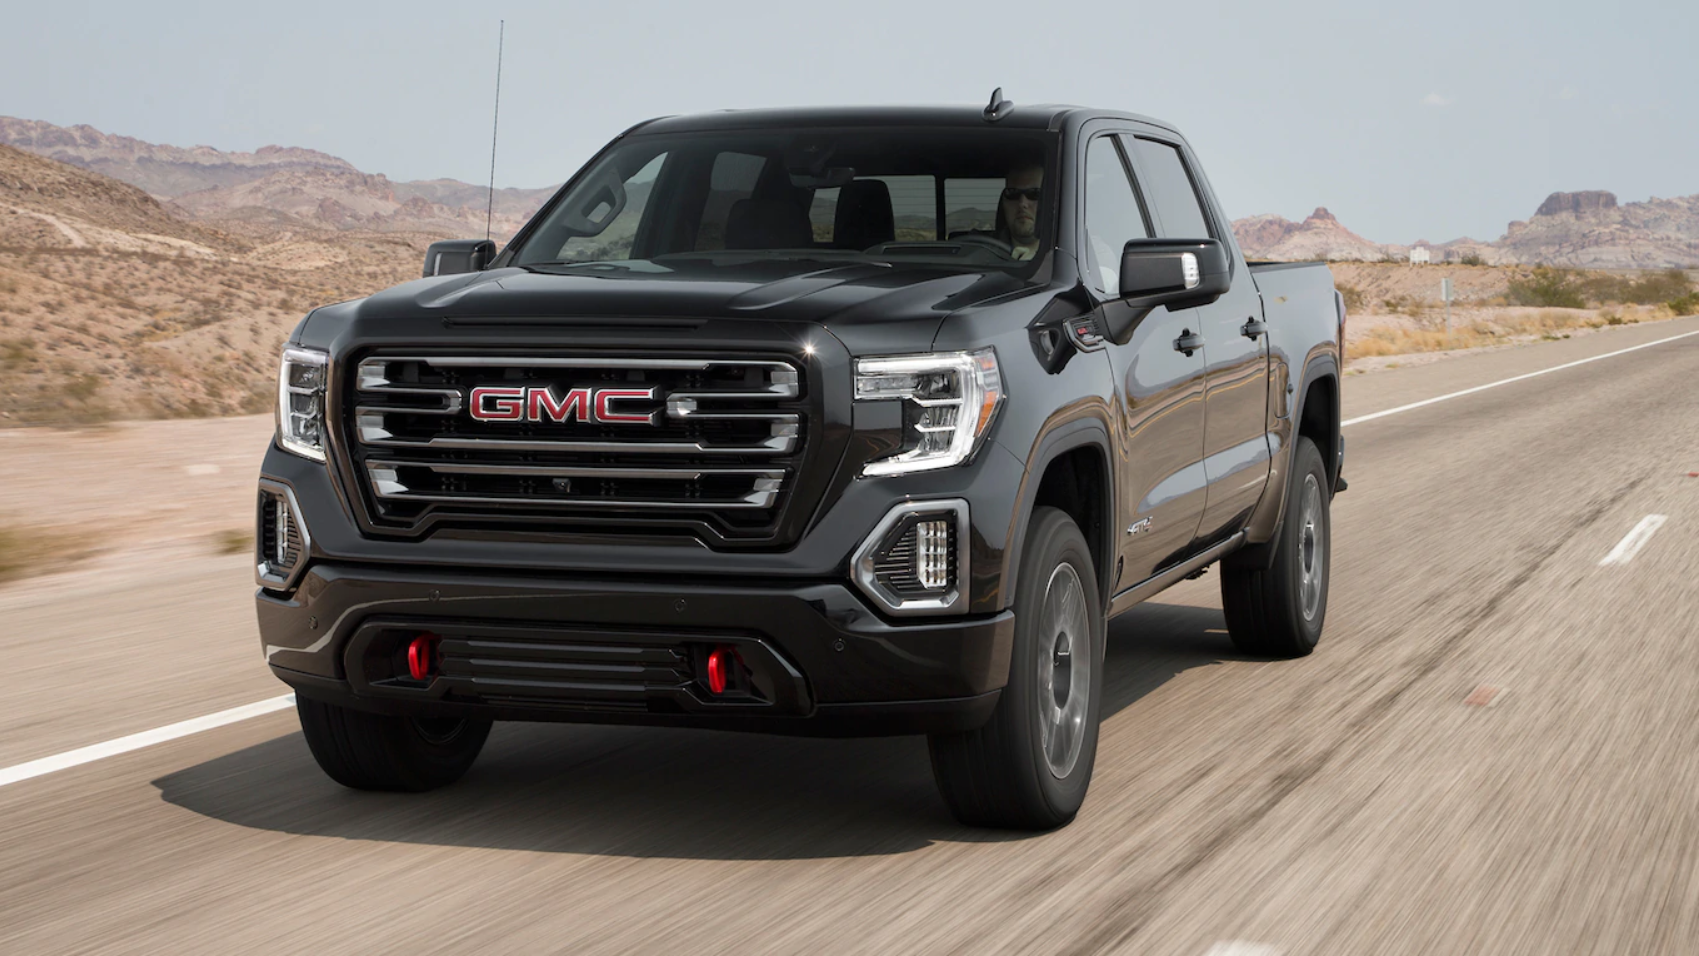 85 New The 2019 Gmc Sierra Images Performance First Drive with The 2019 Gmc Sierra Images Performance